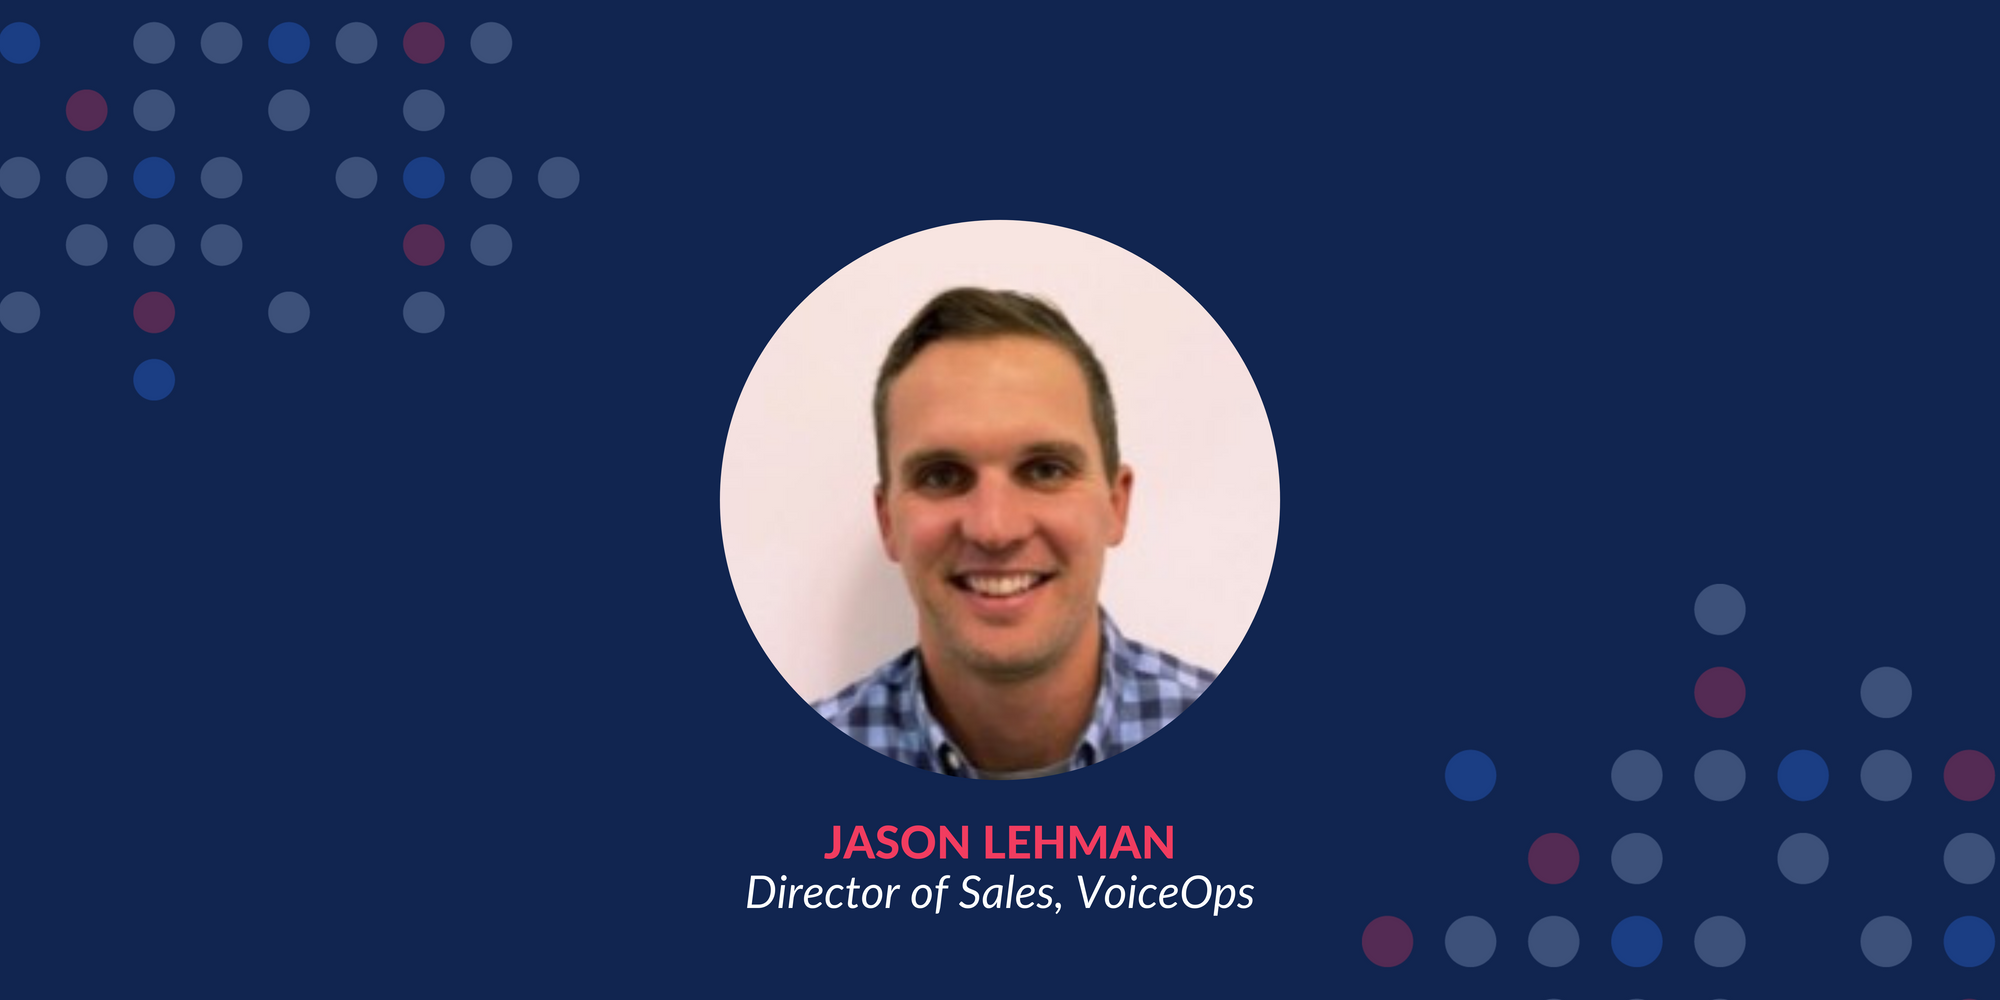 About Jason Lehman, Director of Sales at VoiceOps